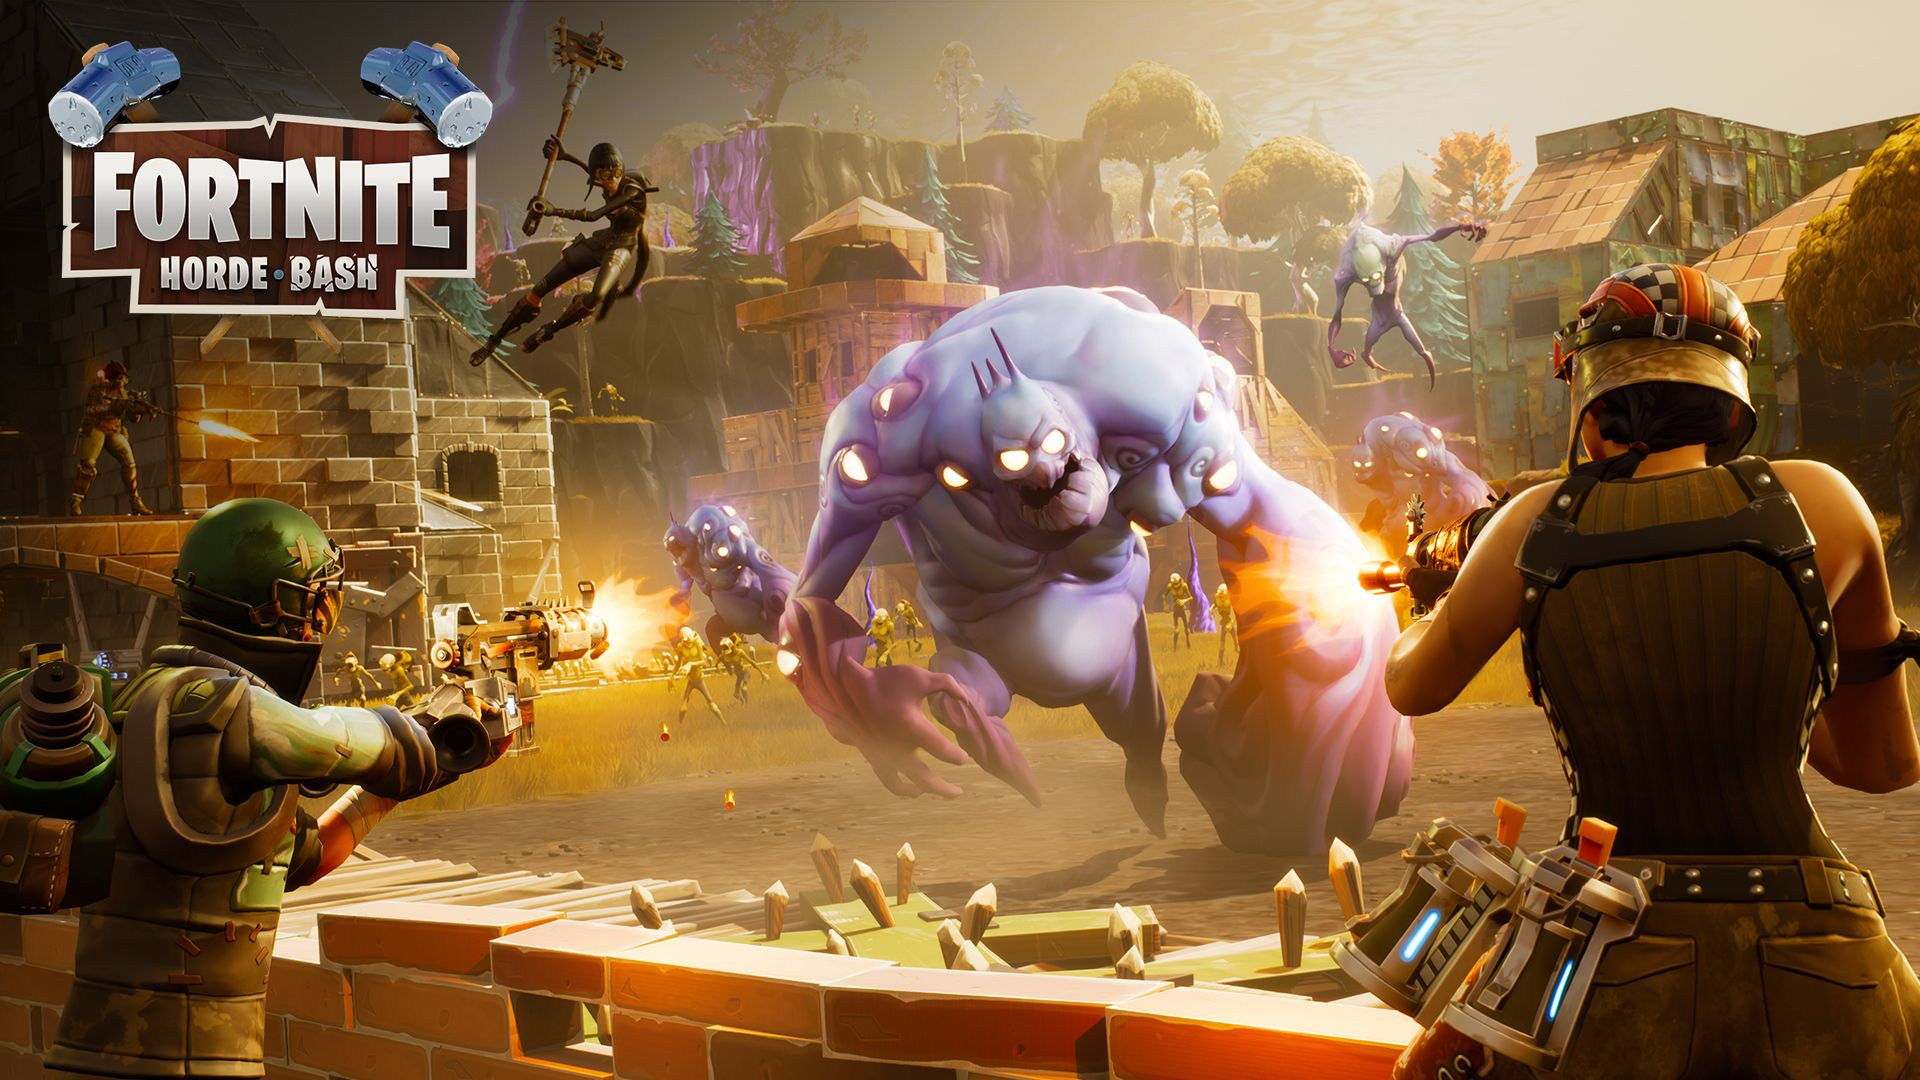 1920x1080 Fortnite Update Reveals Horde Bash Mode and More Updates